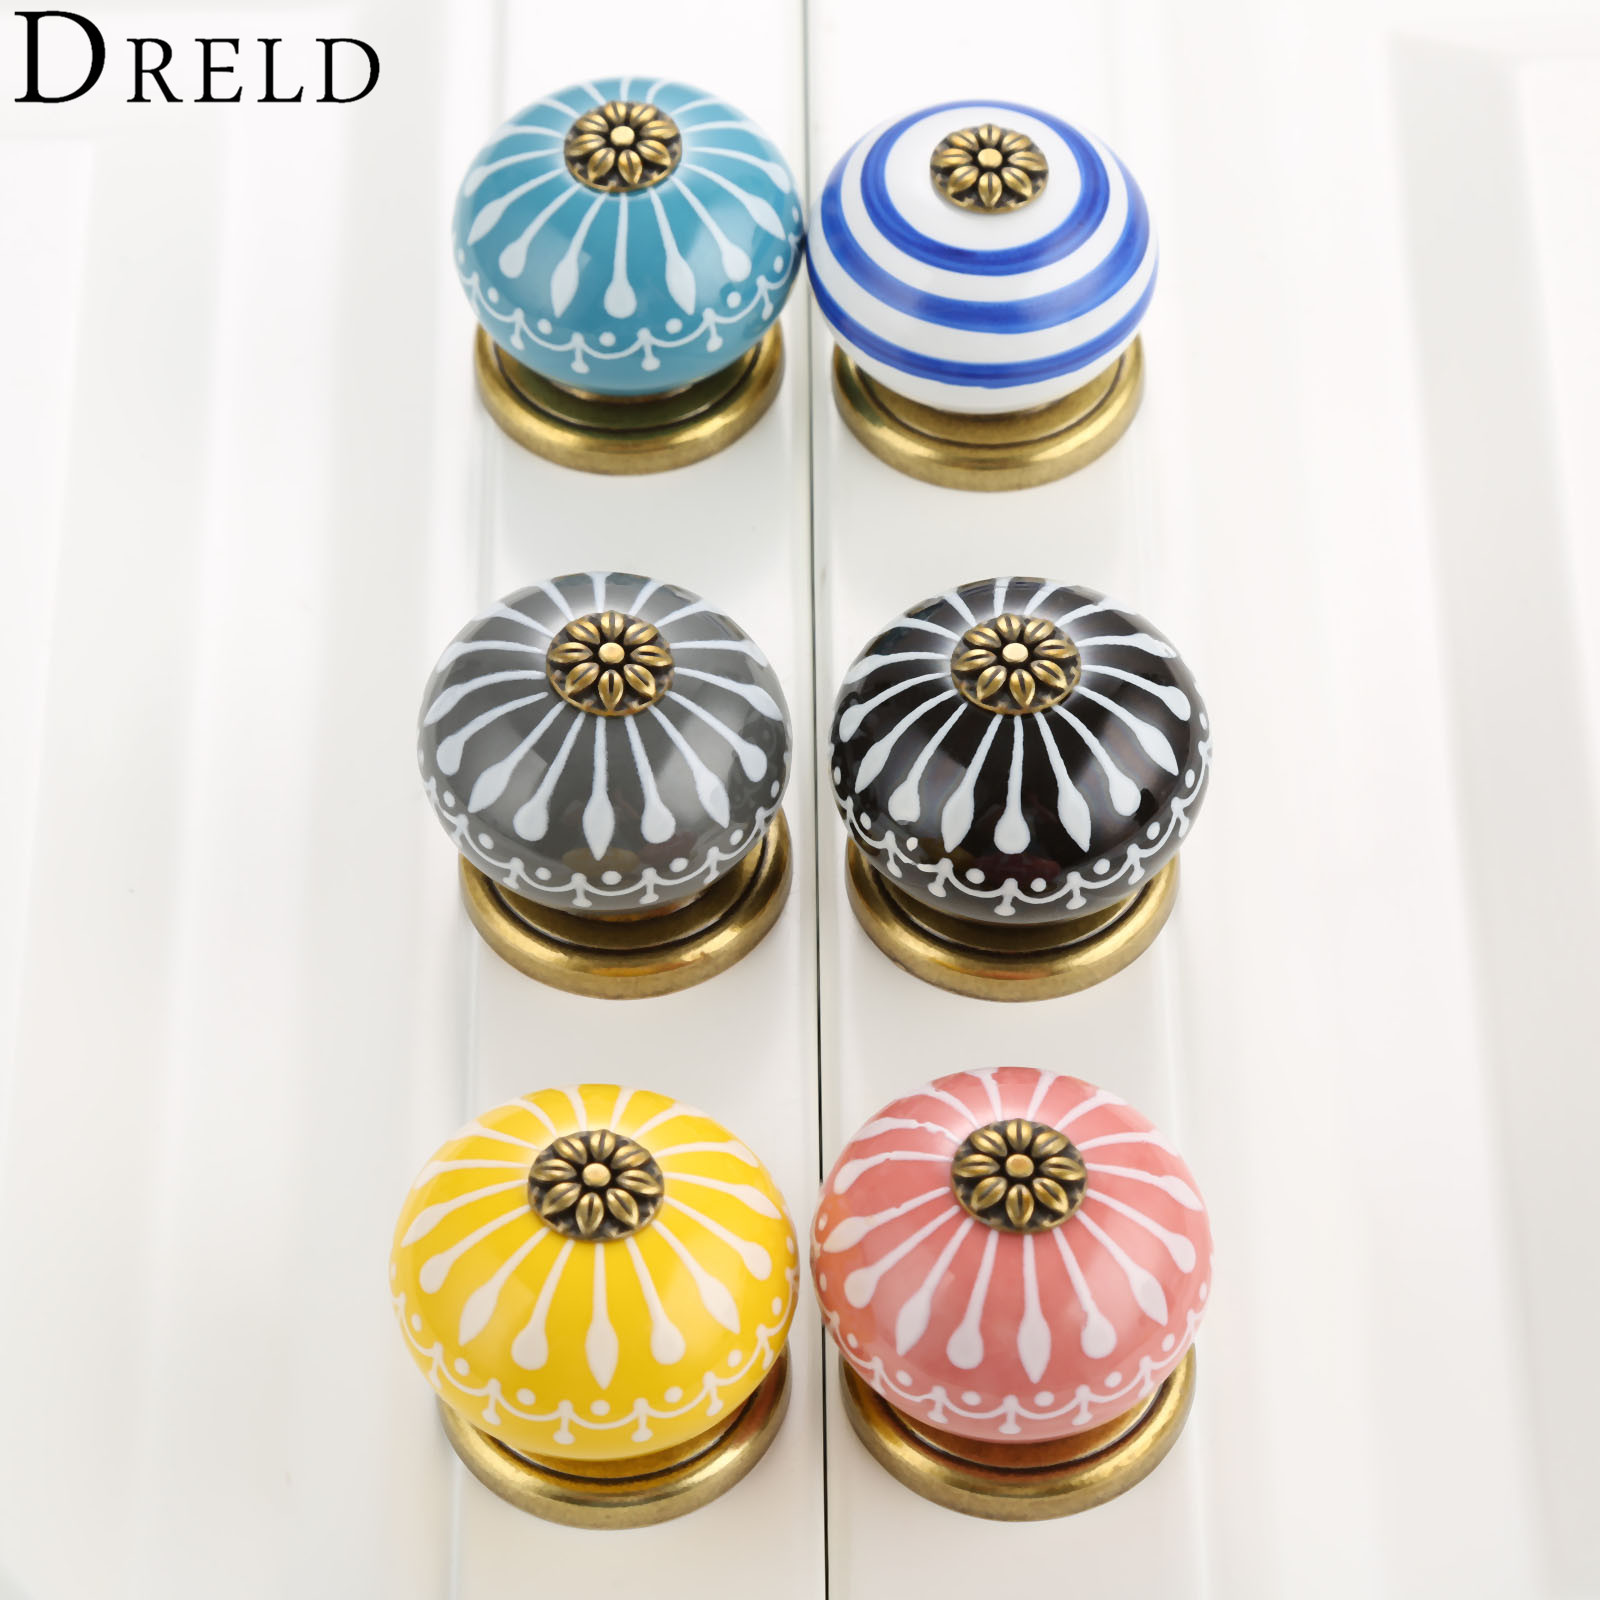 DRELD Ceramic Round Furniture Handles Cabinet Knobs and Handles Door Knobs Cupboard Drawer Kitchen Pull Handle Home Decoration